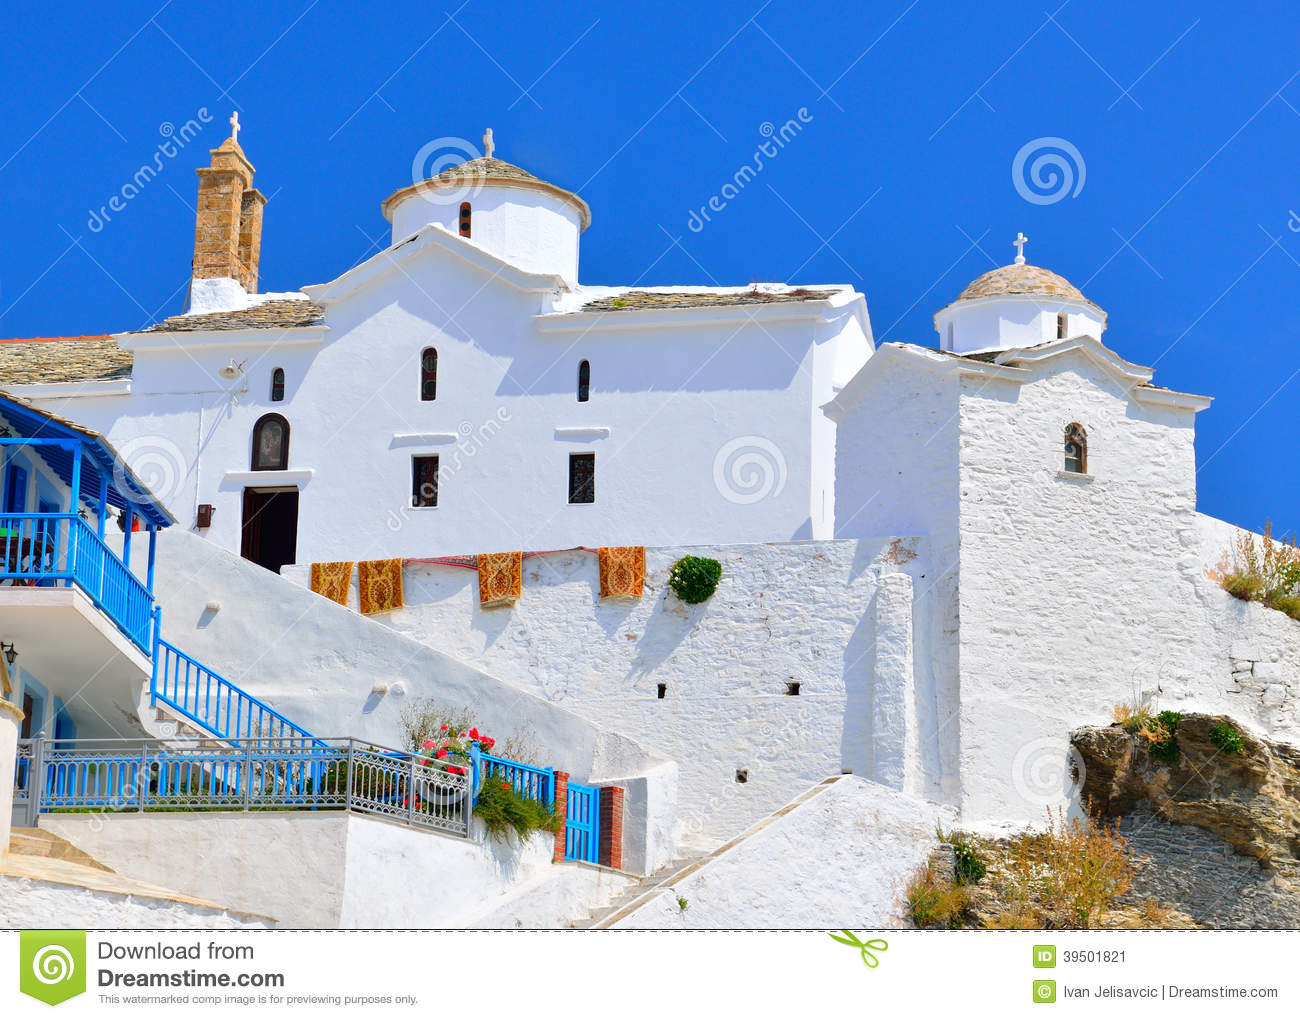 Church with white walls in Chora on Skopelos island, Greece